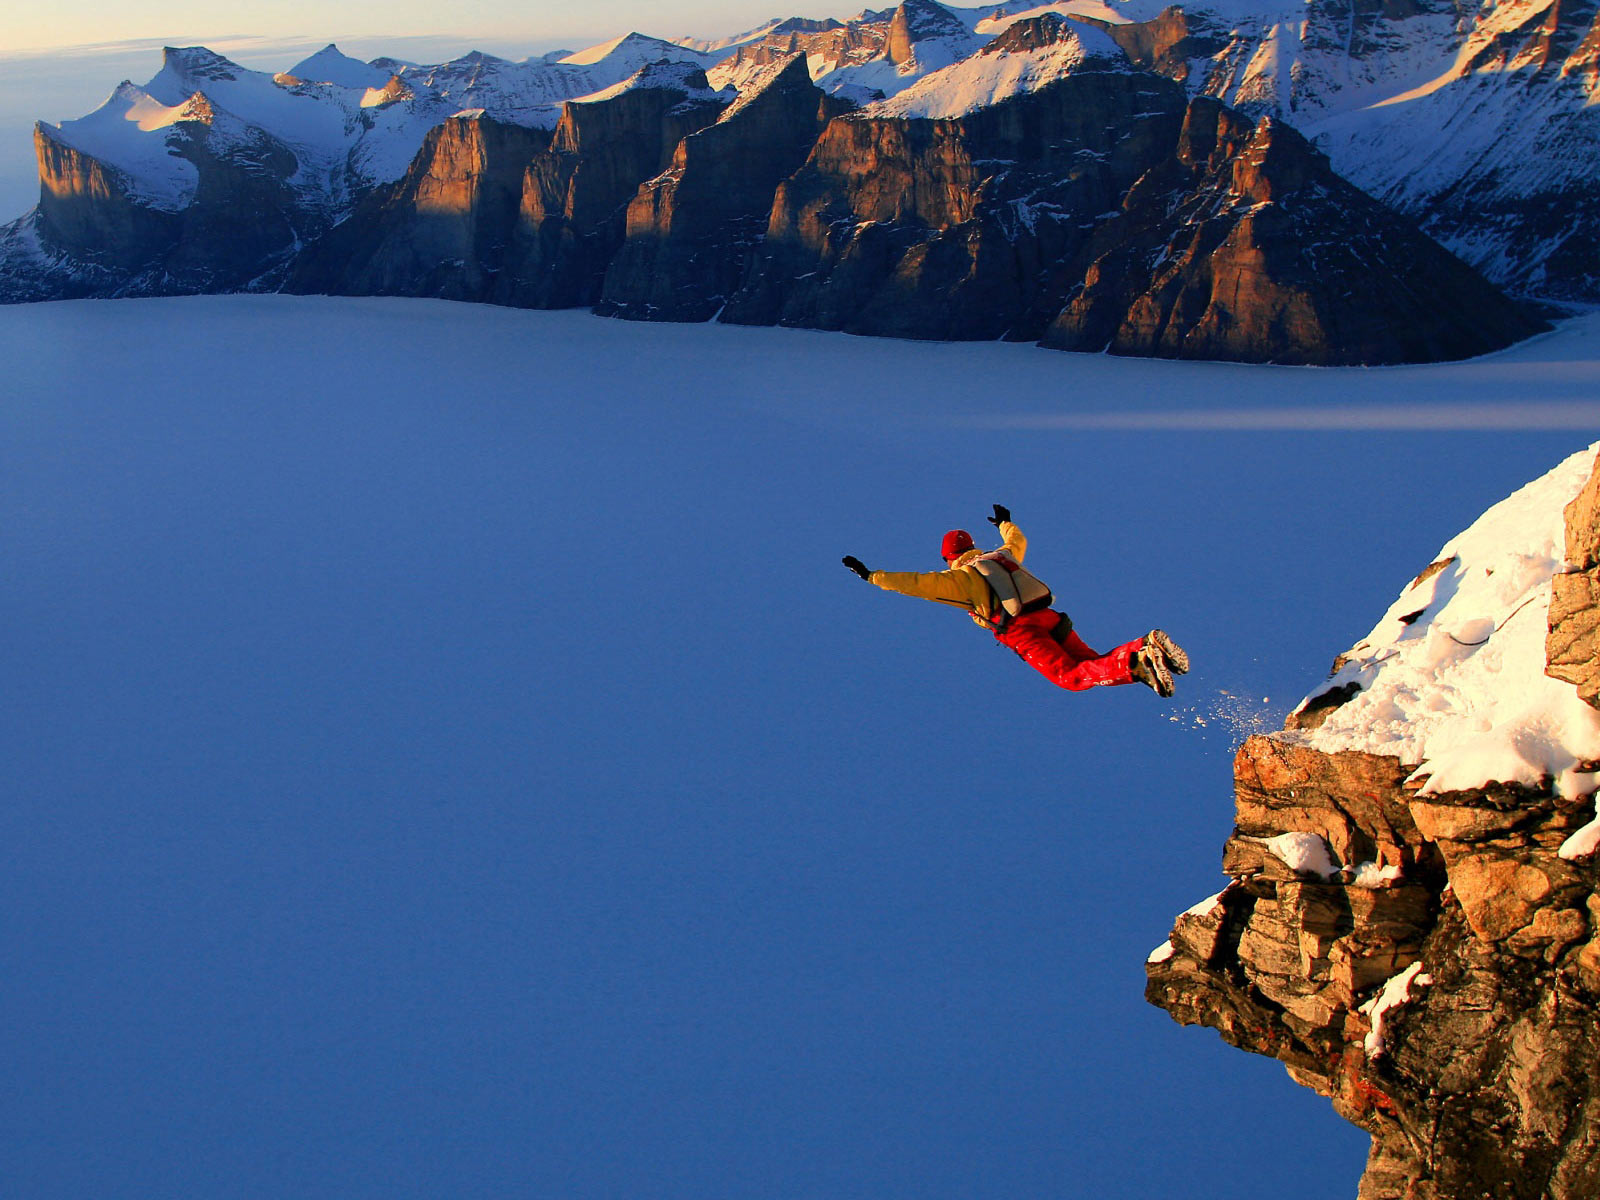 Funny Wallpapers Hd Wallpapers Extreme Sport Wallpaper